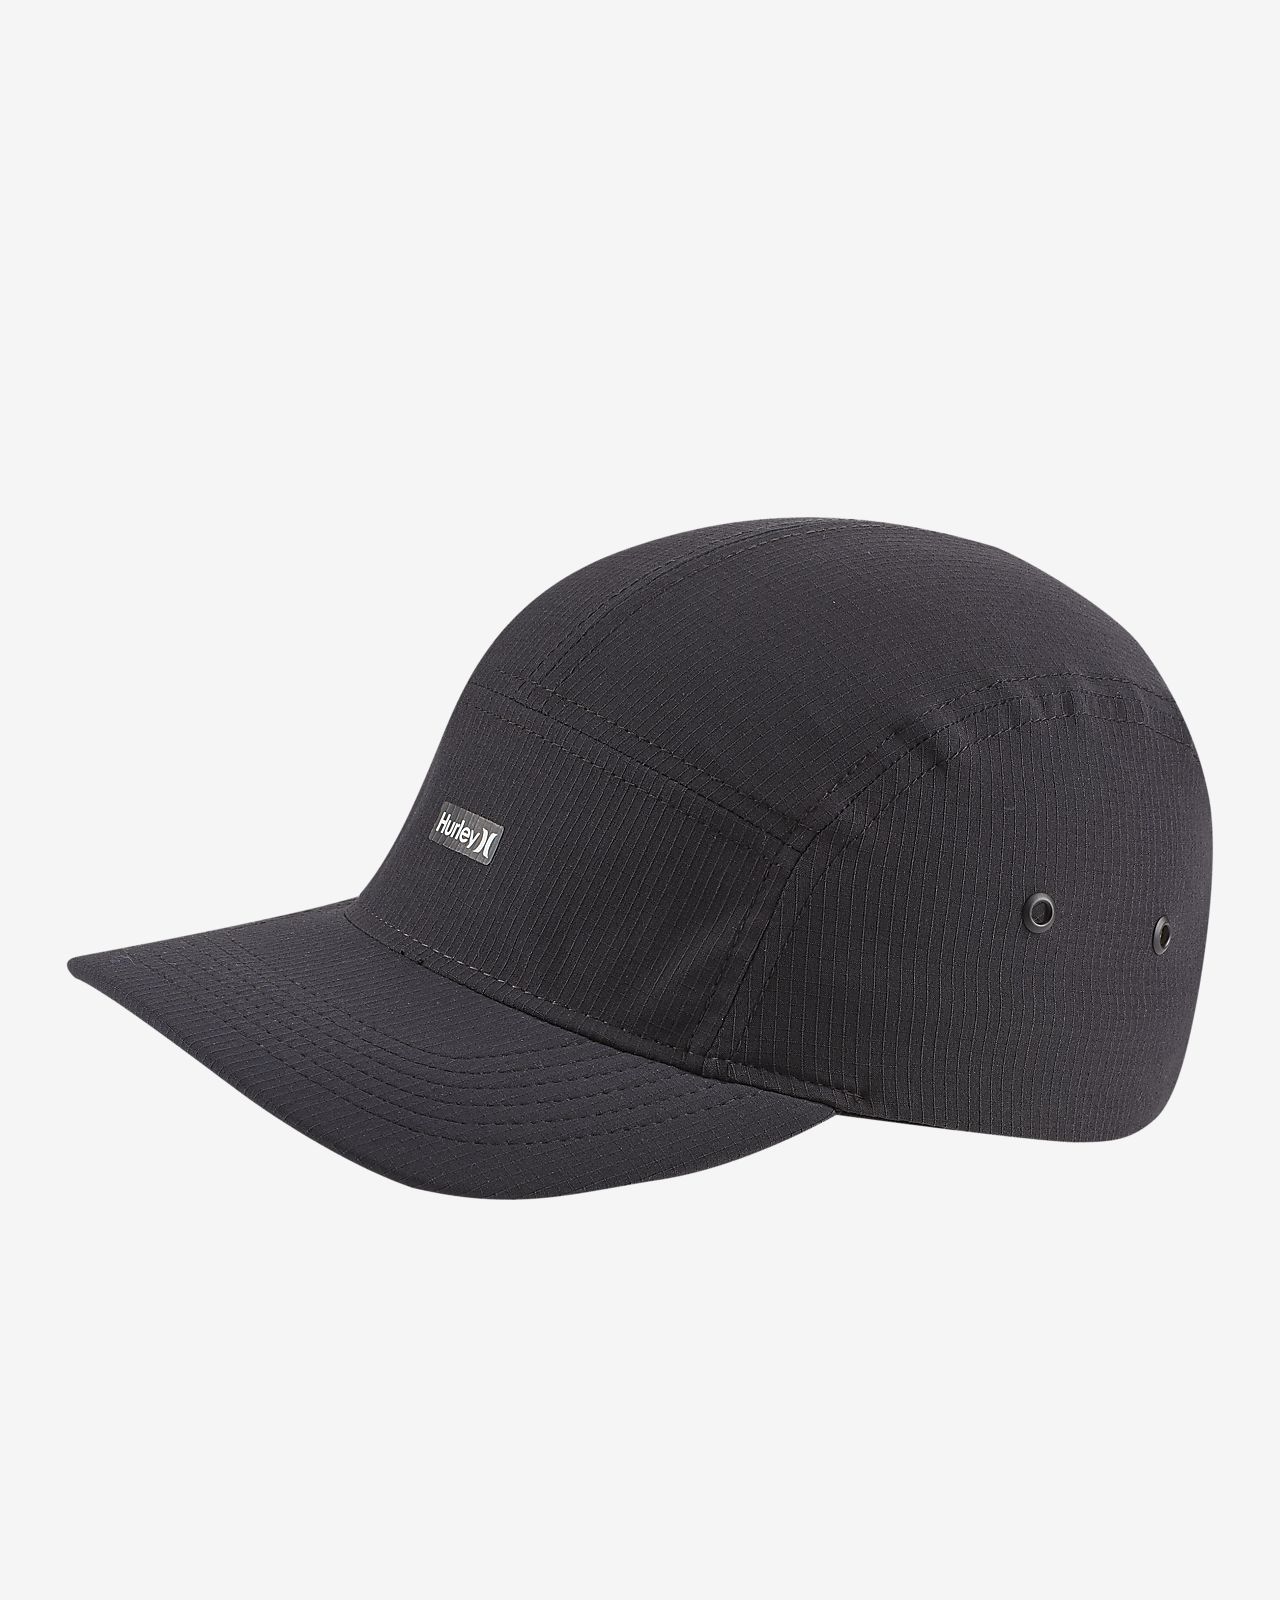 Casquette réglable Hurley One And Only pour Femme